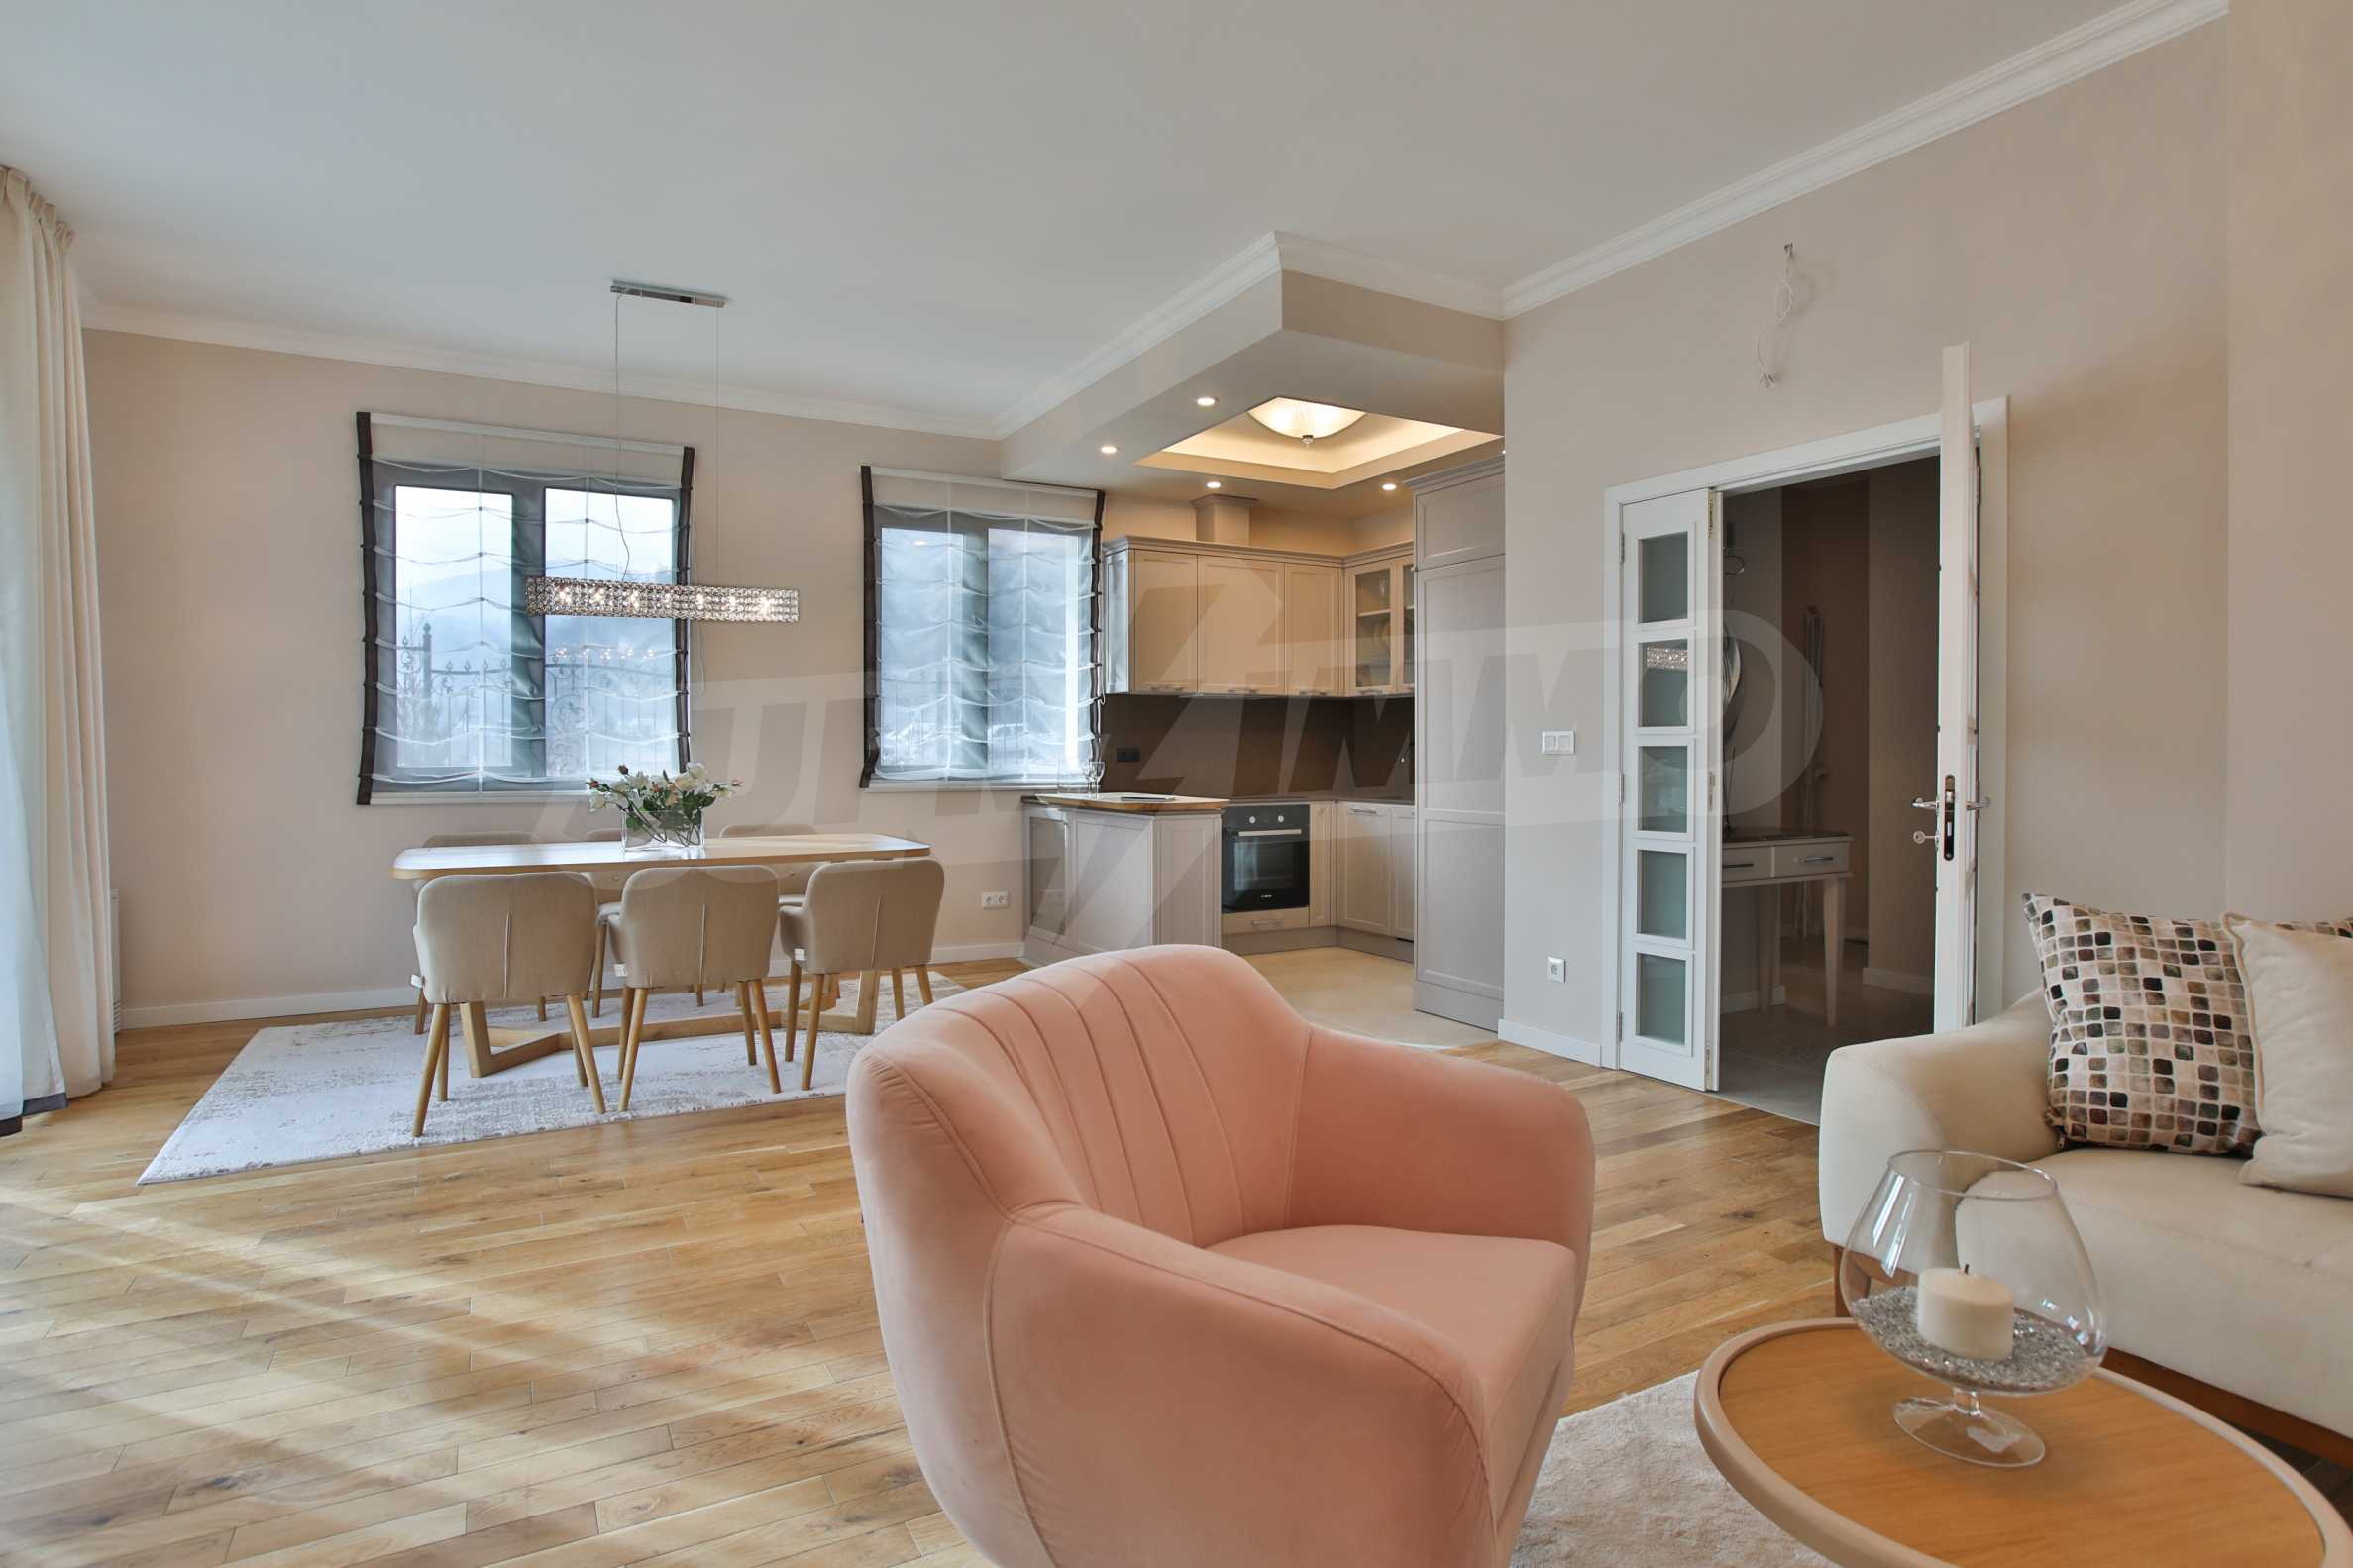 House for rent in Sofia, Bulgaria - Rentals - house.